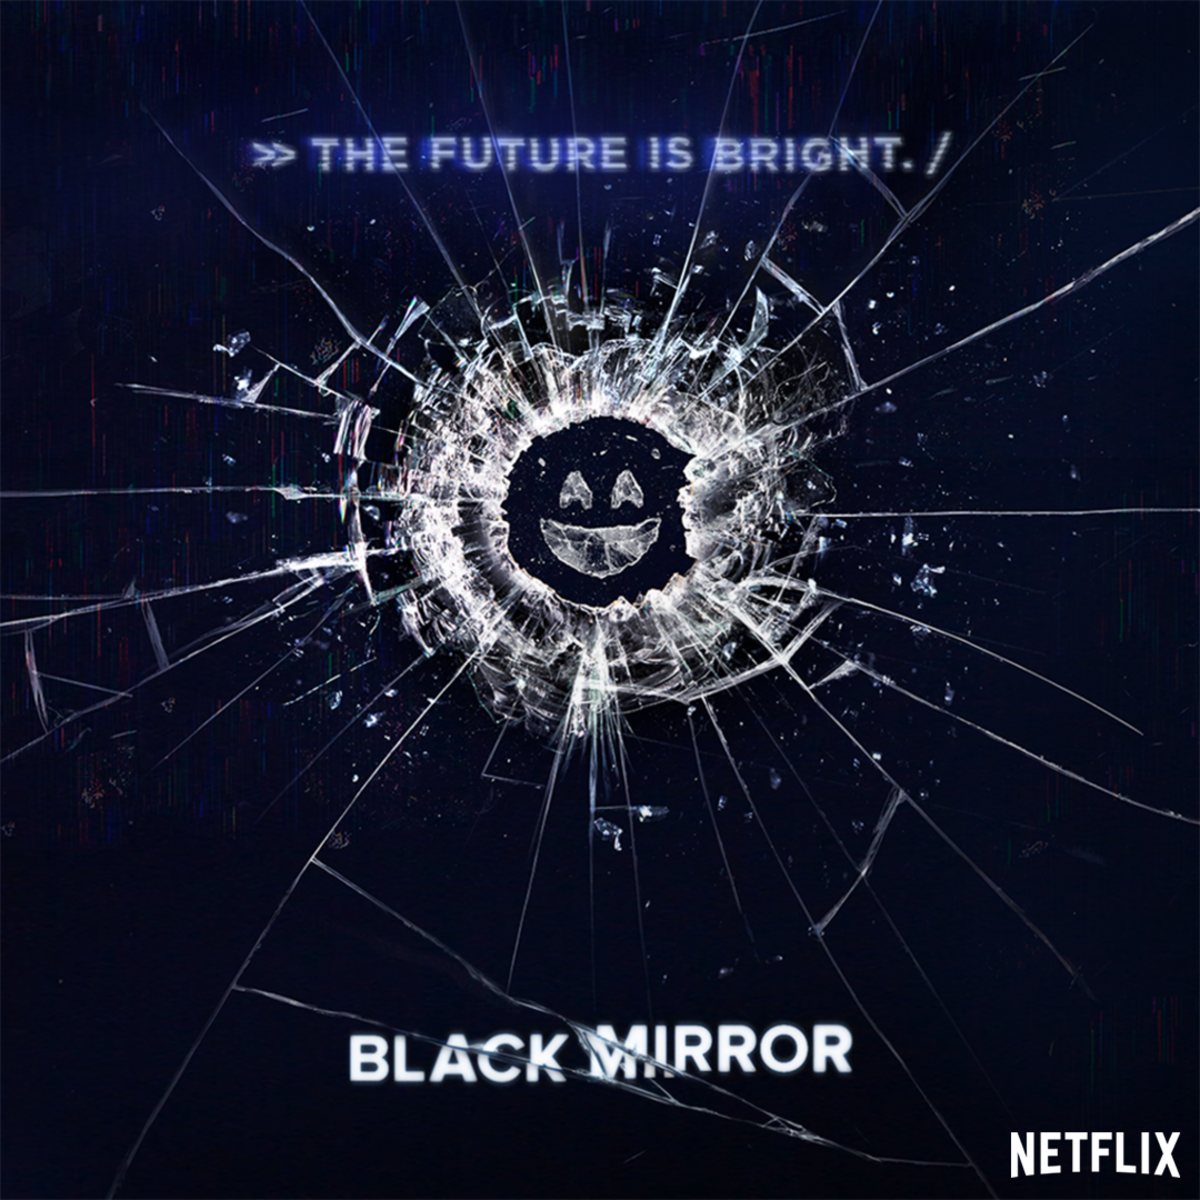 Top 6 Dark Shows Like Black Mirror That'd Take Your Breath Away